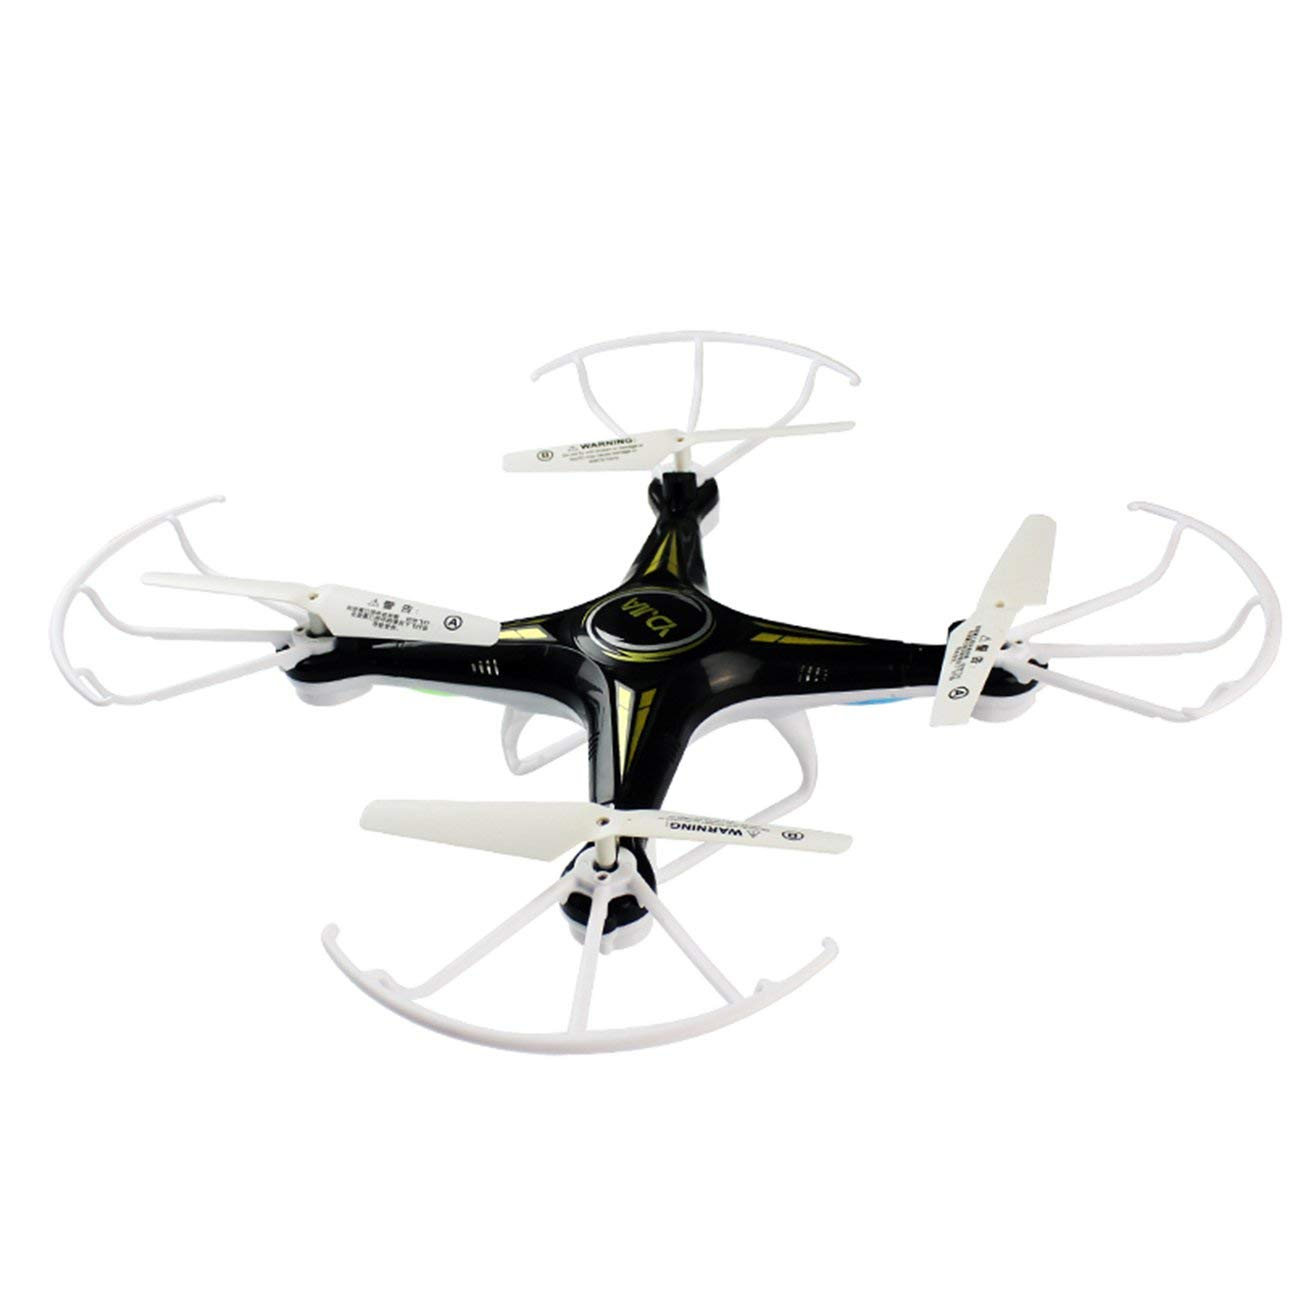 Liobaba D73GW Stylish Shape Drone WiFi Quadcopter Drone Mobile Remote Control 720P HD Camera Headless Mode Helicopter